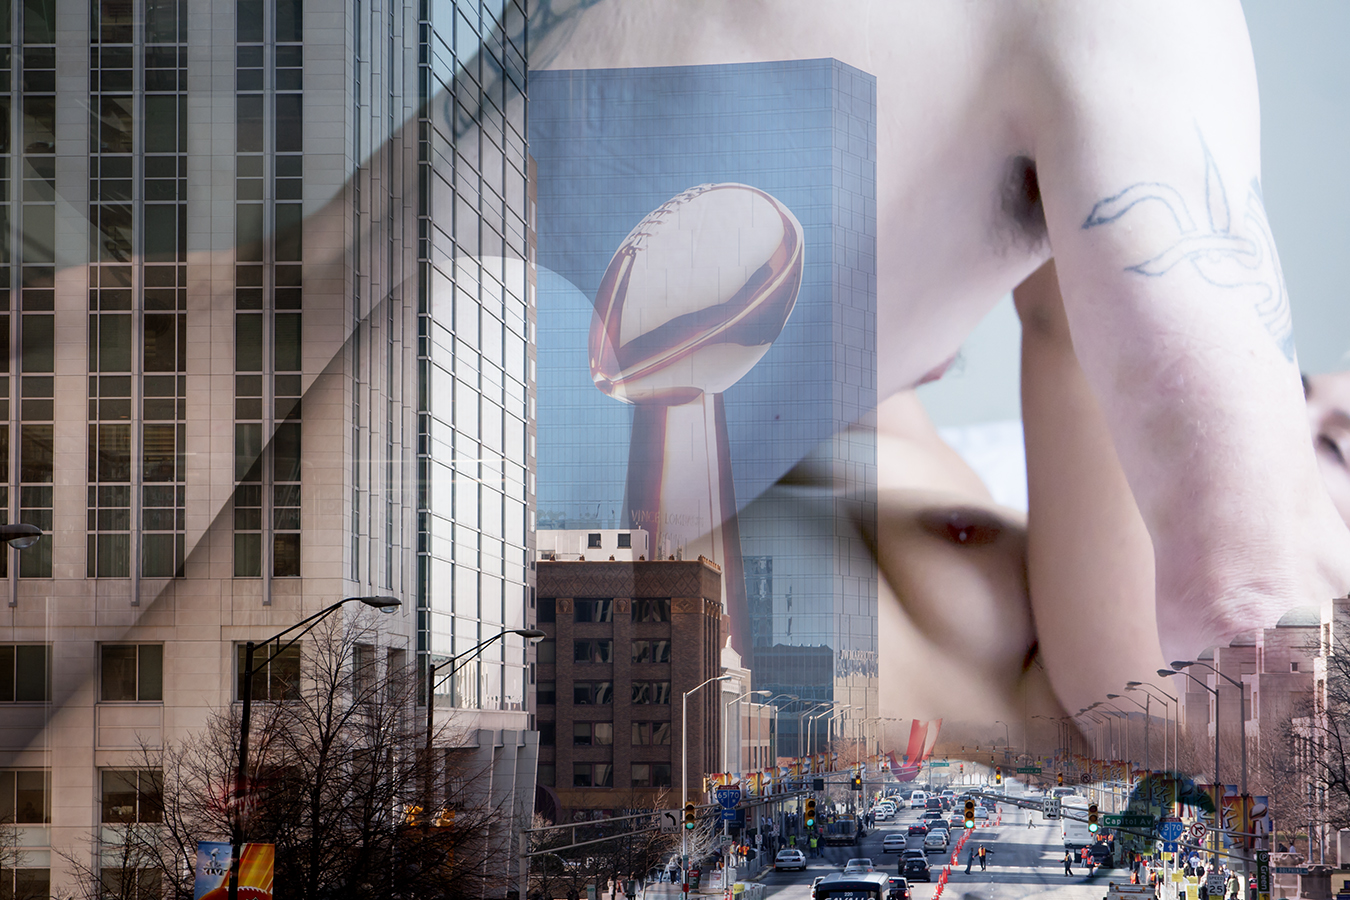 charles i. letbetter - censoring the super bowl